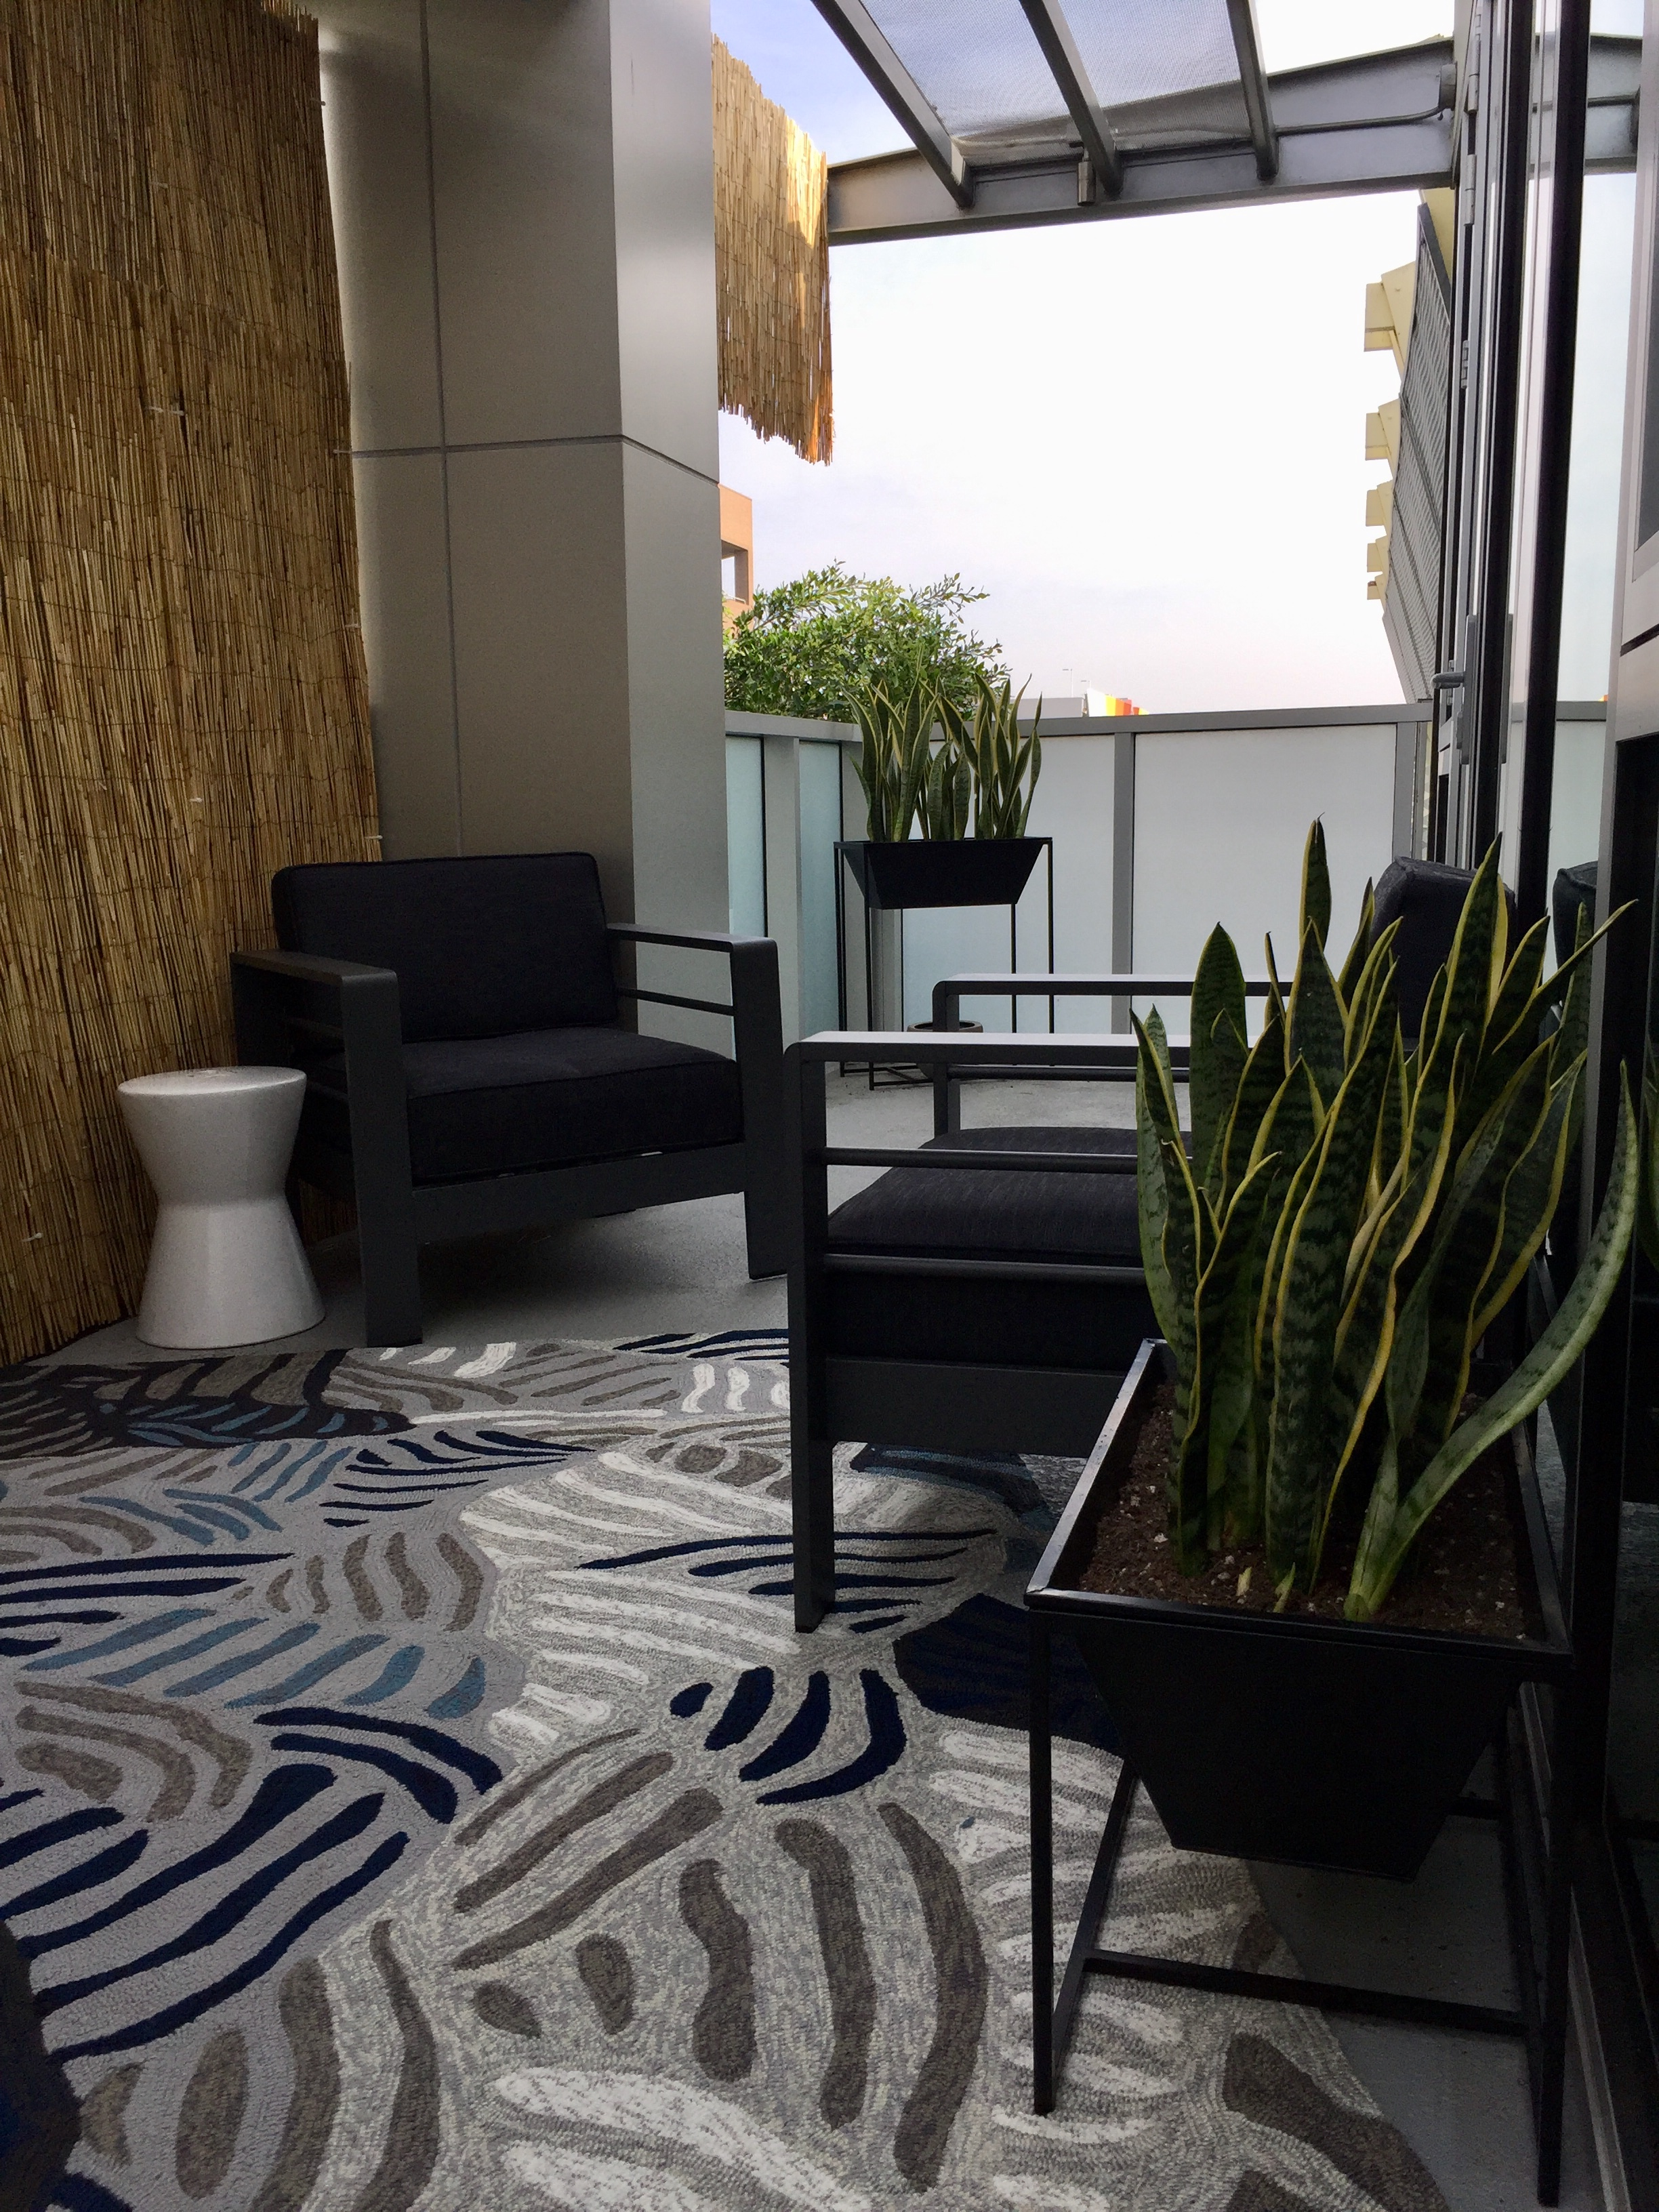 Snake tongue plants are very easy care and stay green all year round in LA, making them a perfect choice for this client's planting needs. They also make a strong statement in keeping with this bachelor's modern aesthetic.